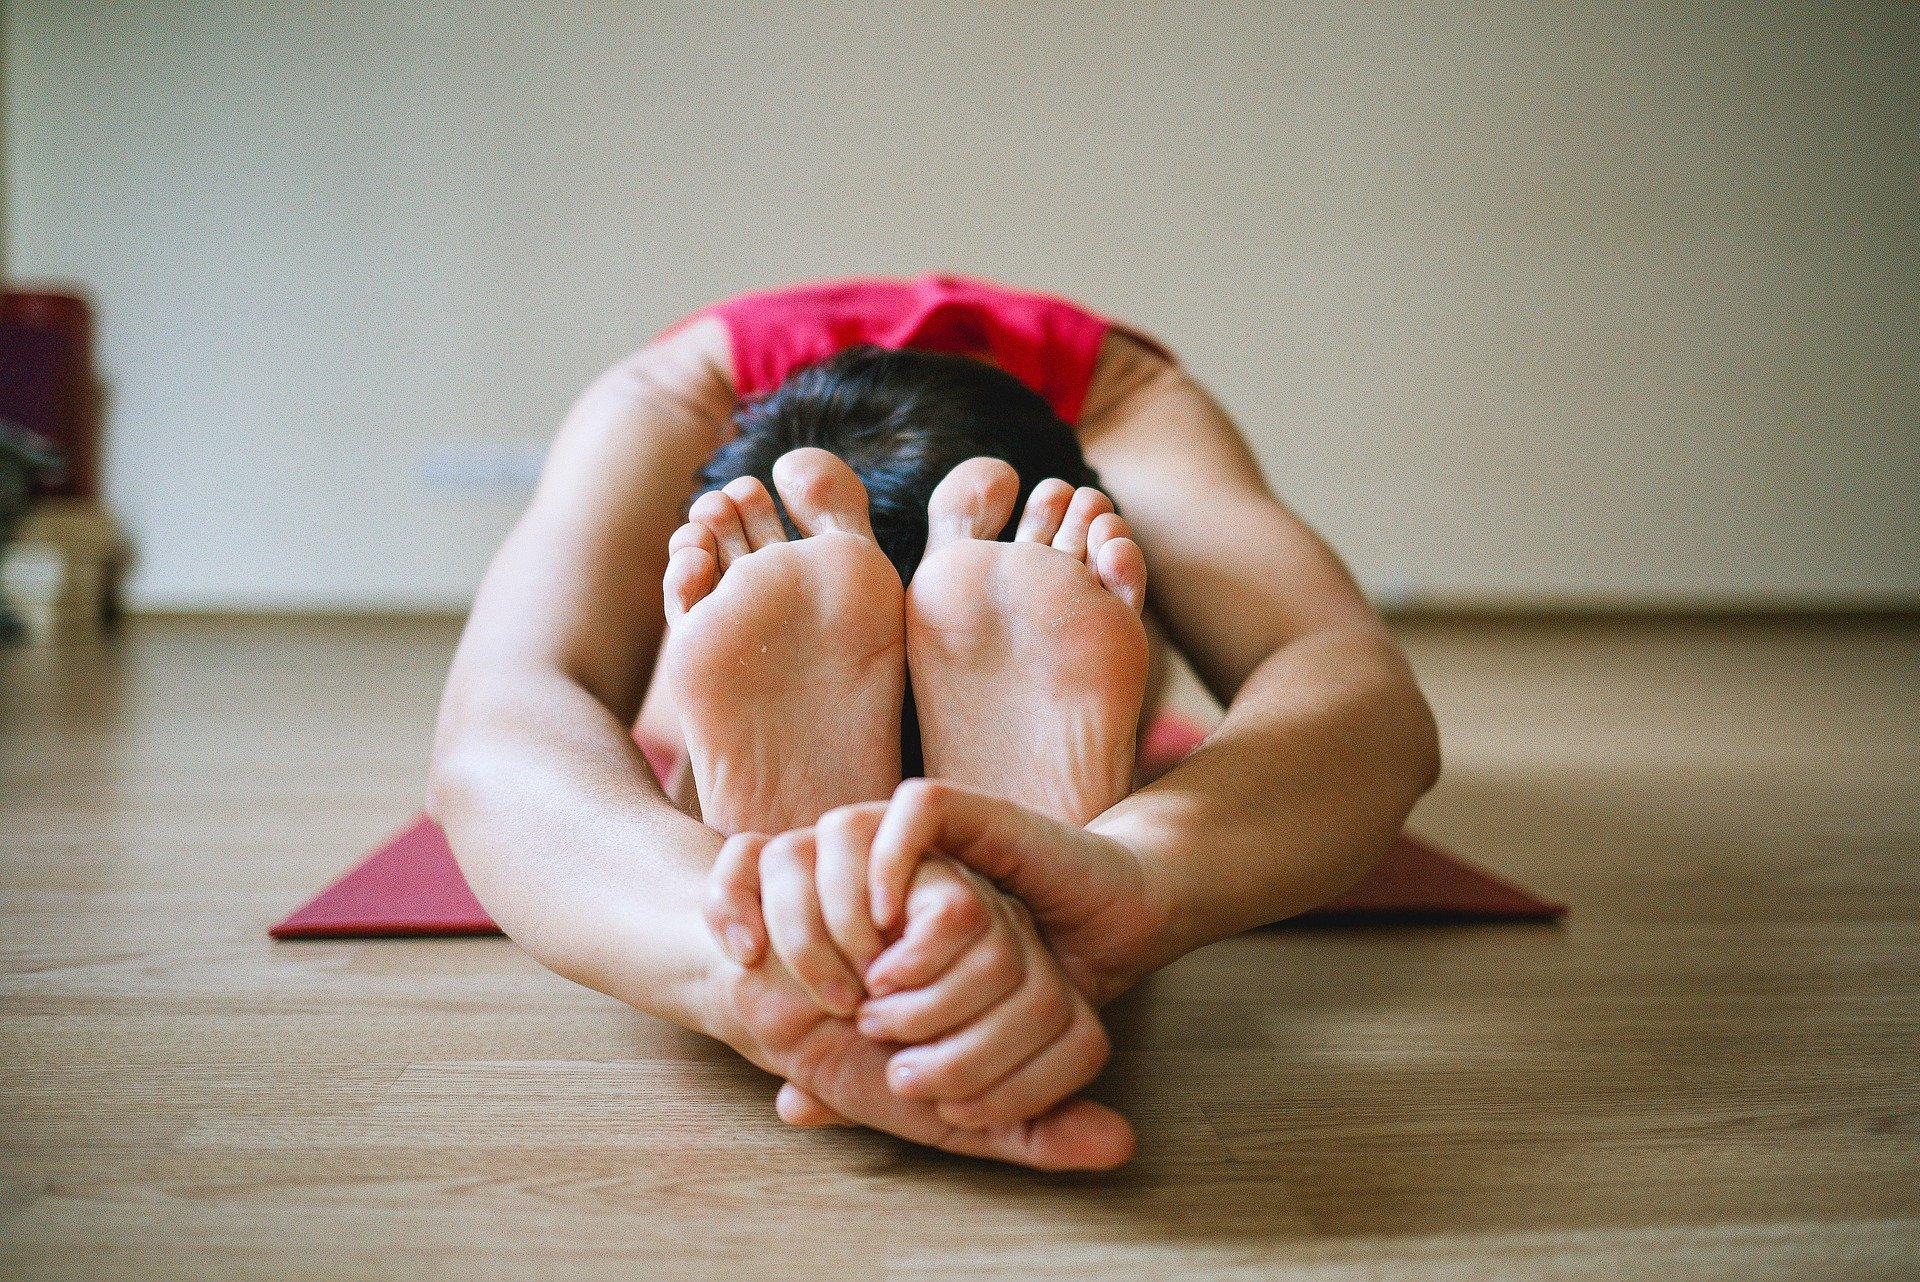 A girl stretching and touching her toes on a yoga mat.